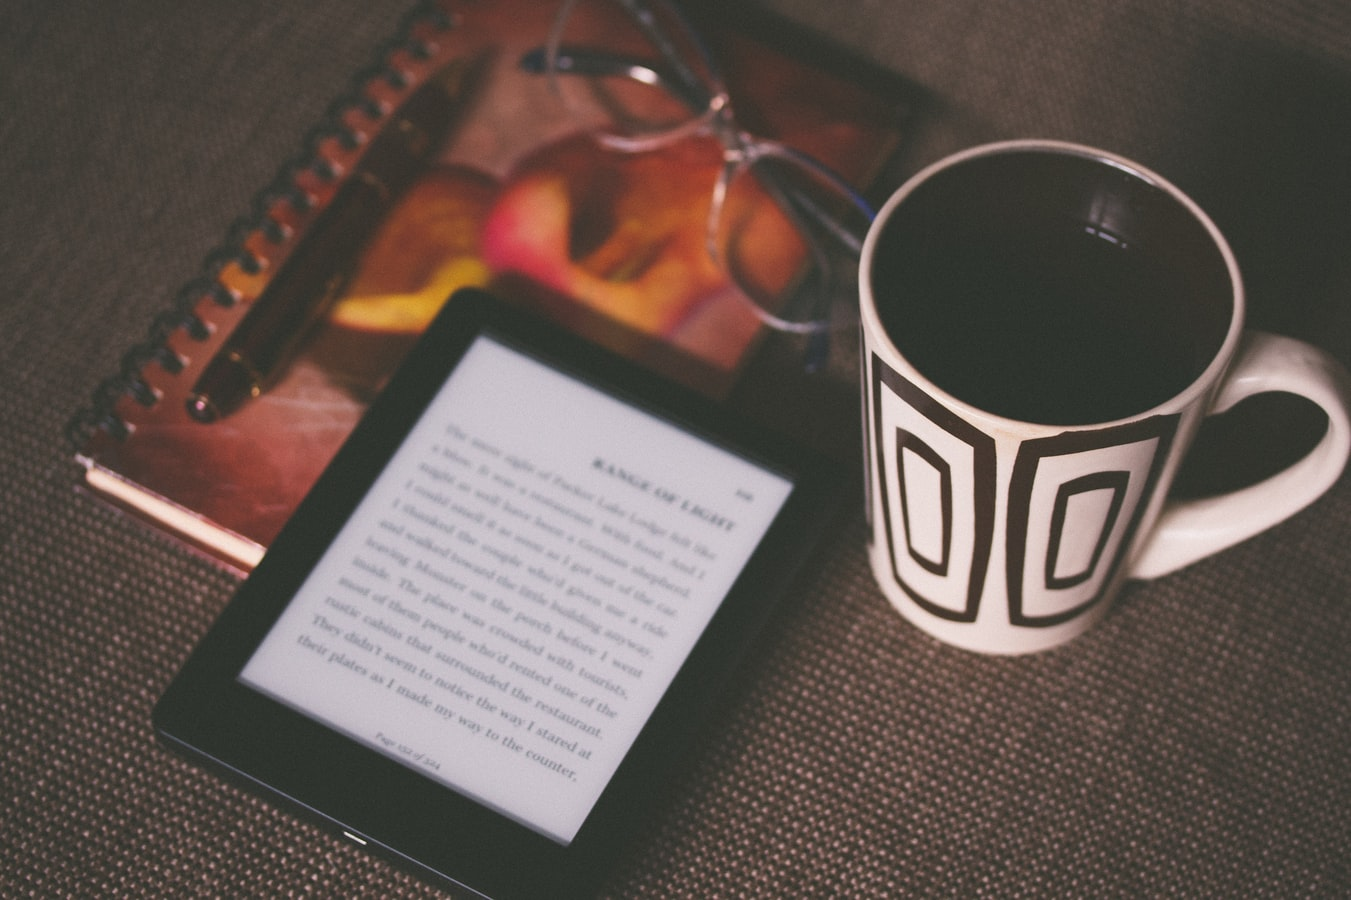 Kindle e-book reader next to a coffee mug